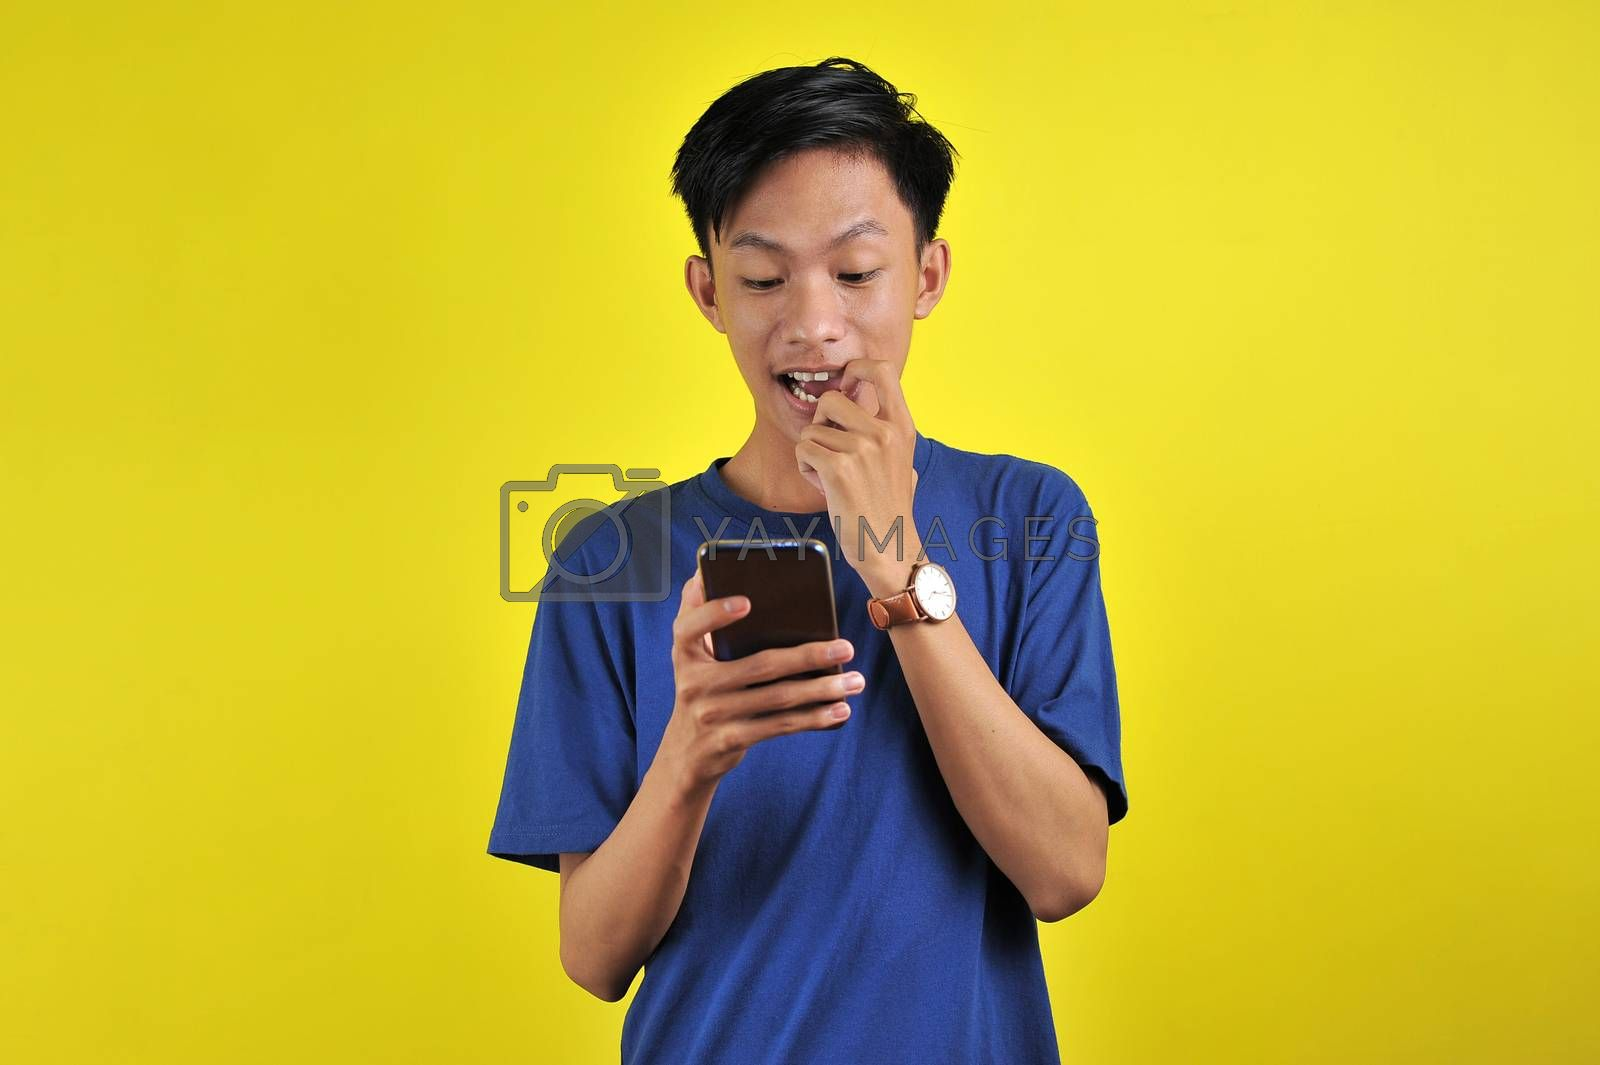 Shocked face of Asian man in white shirt looking at phone screen on yellow background.